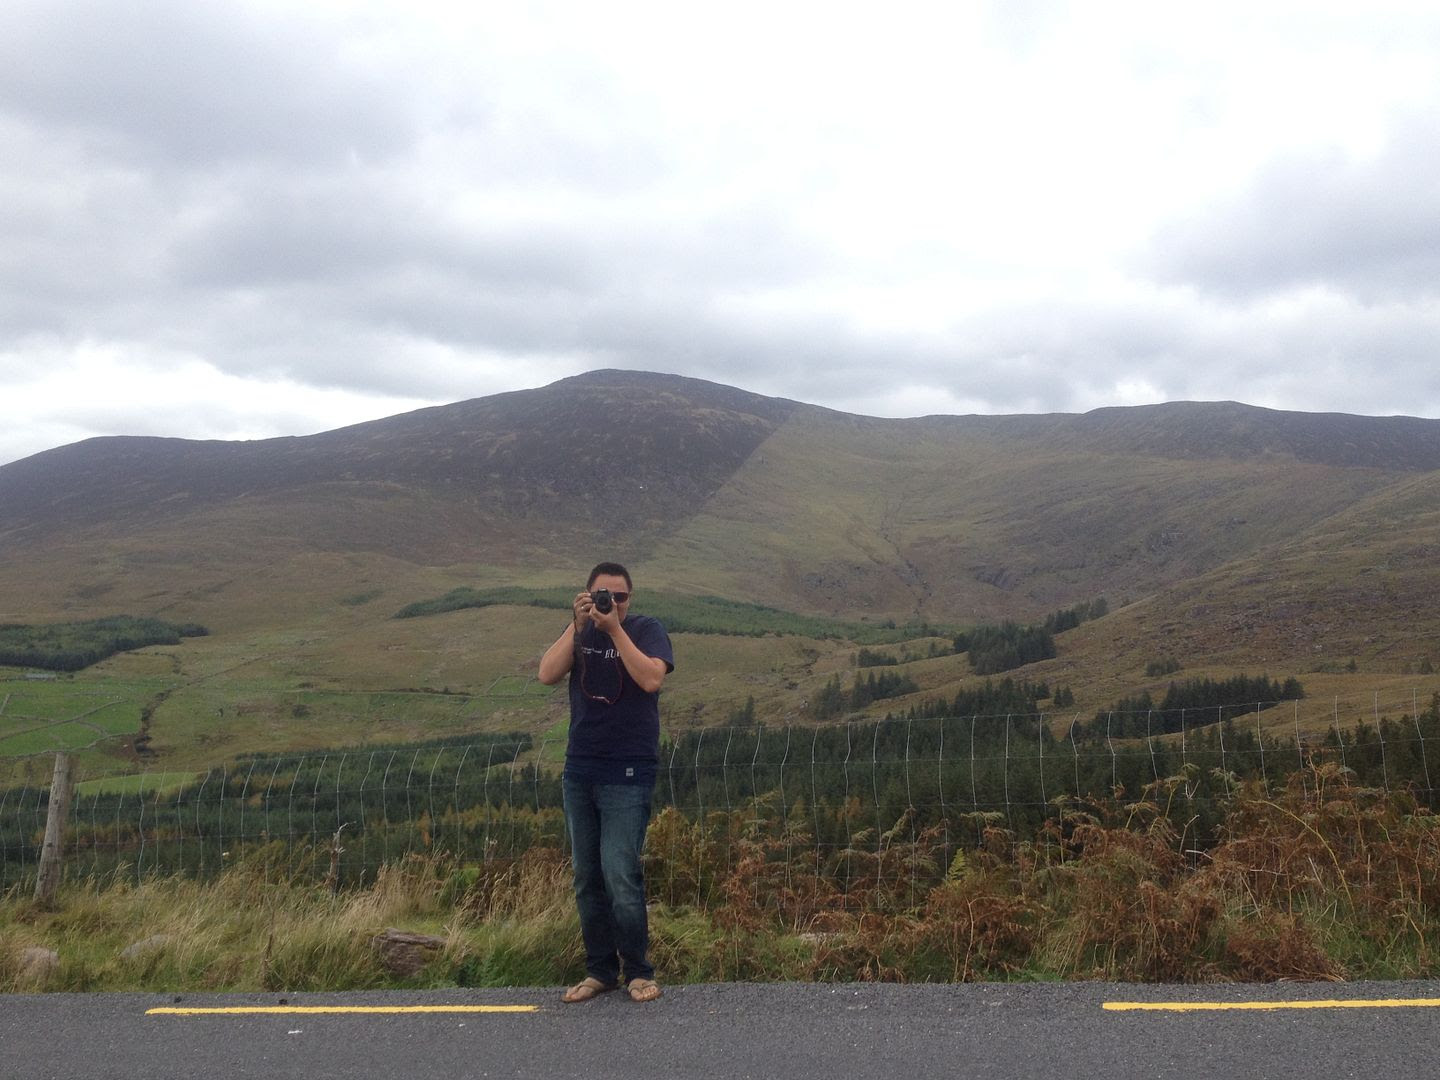 County Kerry, Ireland photo 2015-10-14 13.52.32_zpsxqapvesb.jpg